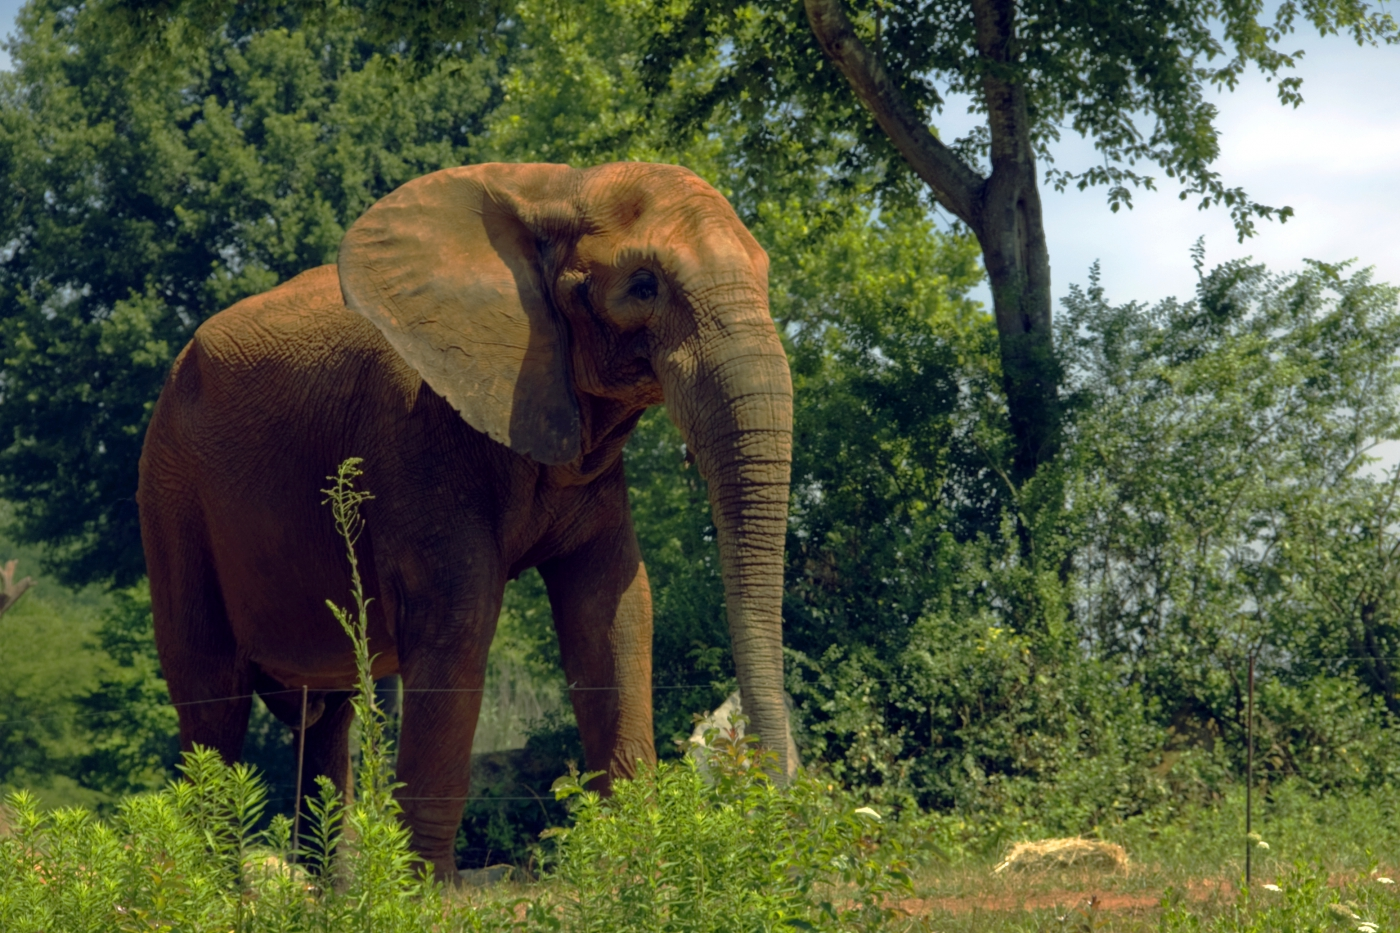 The North Carolina Zoo in Asheboro is a great destination for the day!